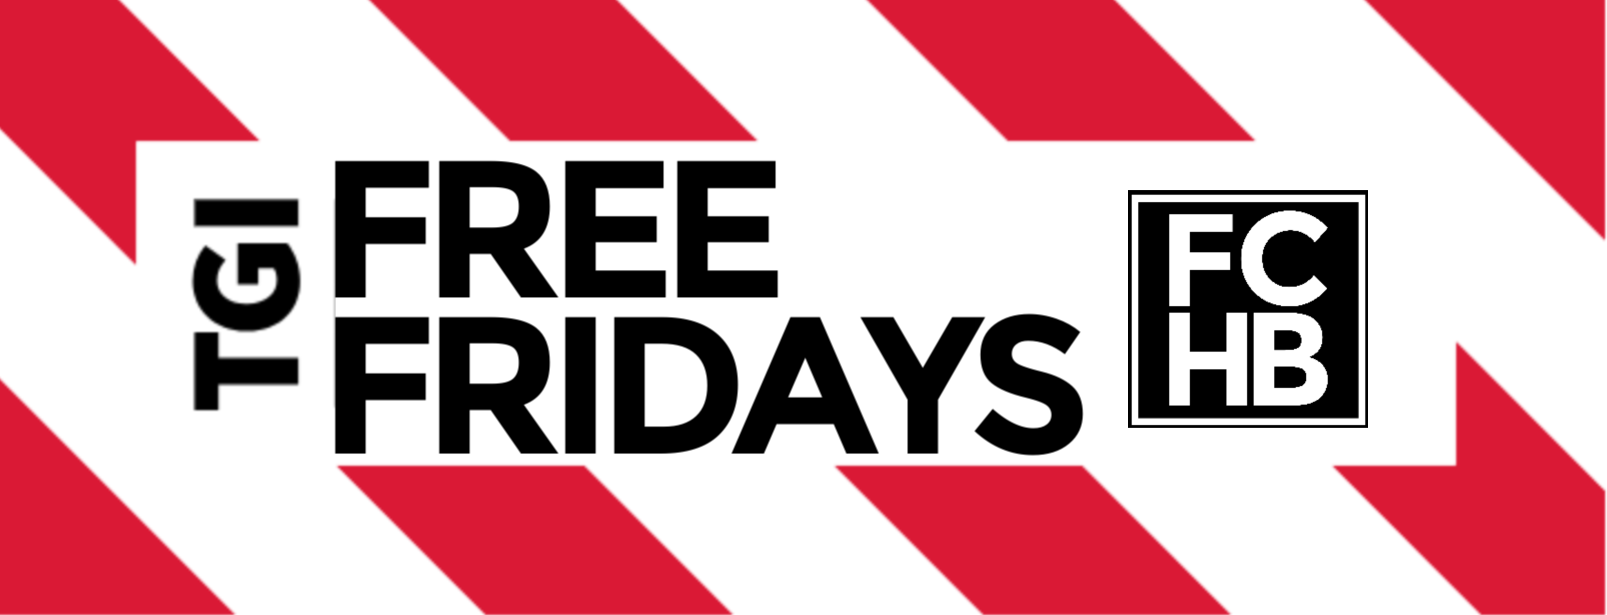 - Our free Friday clinics program is a collection of hyper-focused special topics ranging from finishing to speed & Strength to defensive technique. Free Fridays will return in November and run through the end of the calendar year.